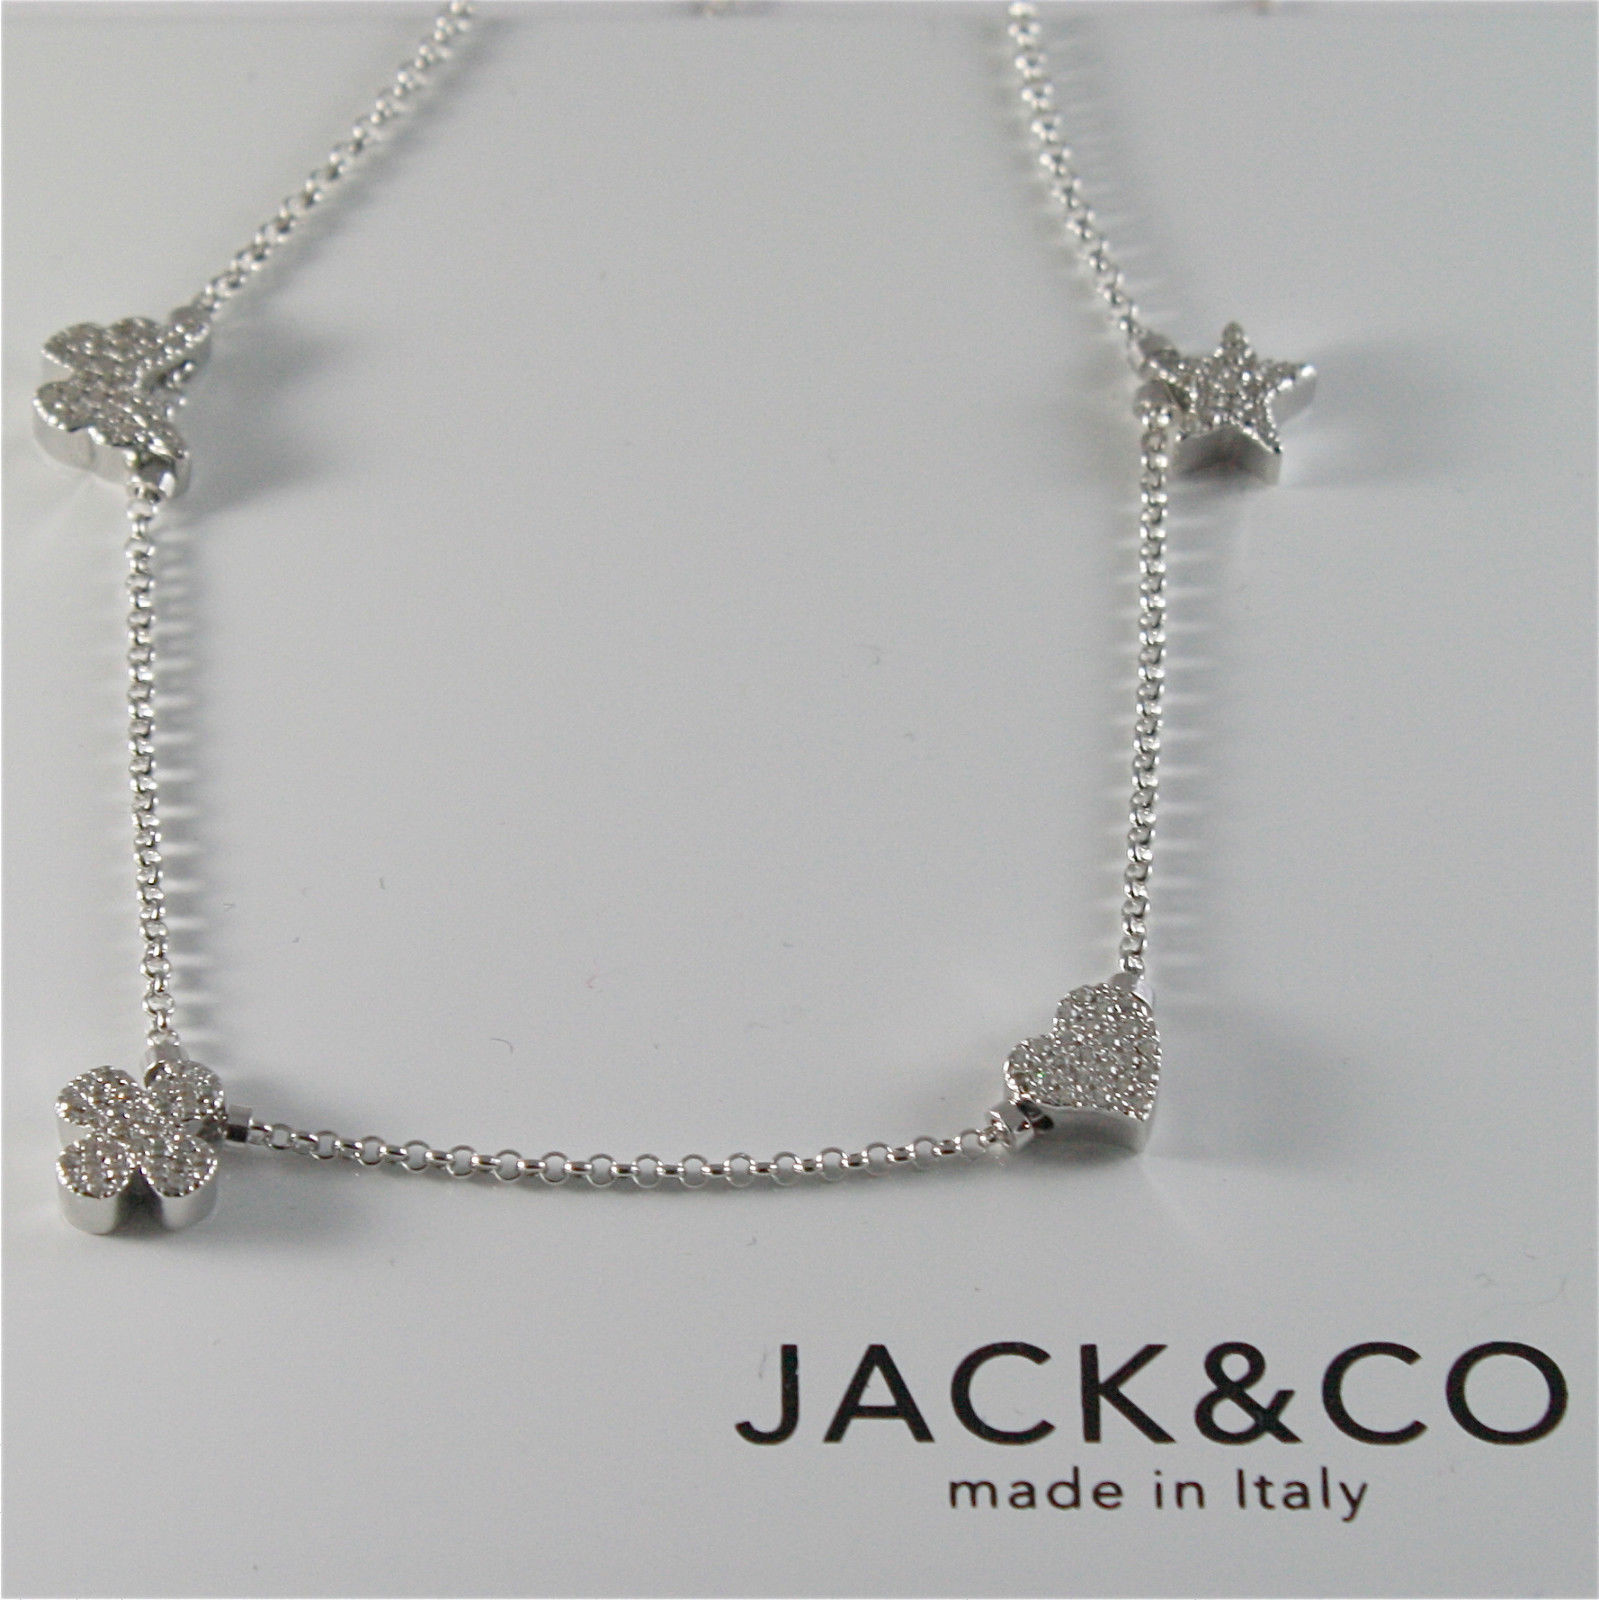 925 STERLING SILVER NECKLACE JACK&CO WITH FOUR-LEAF CLOVER HEART STAR AND